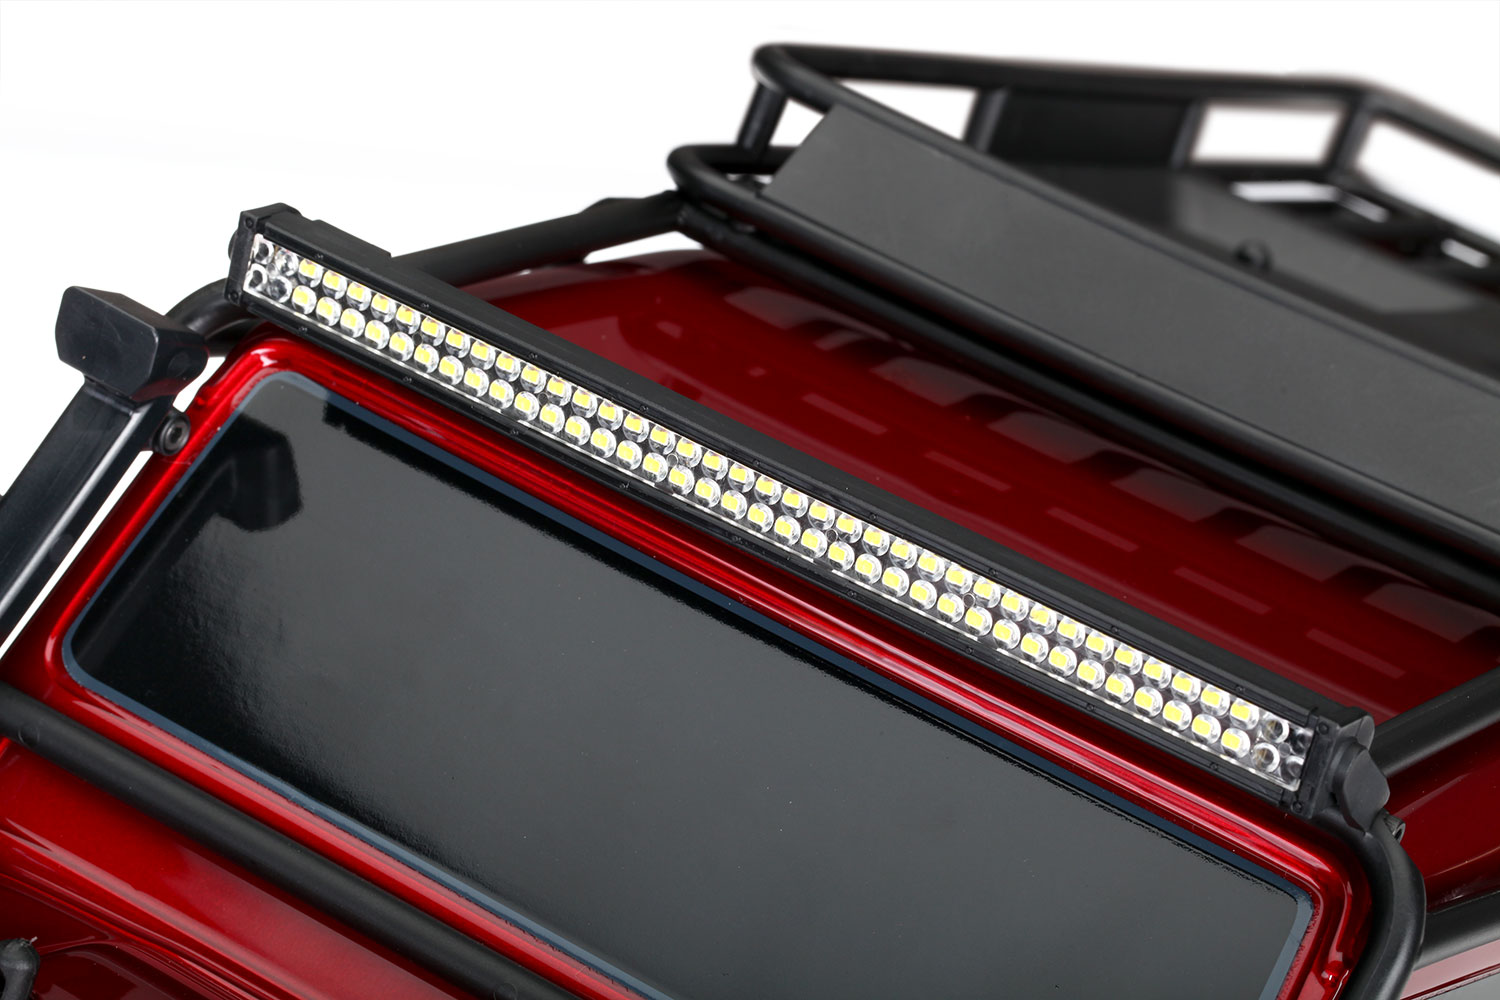 Trx 4 led light kits now available traxxas led light bar with highlow brightness switch aloadofball Images